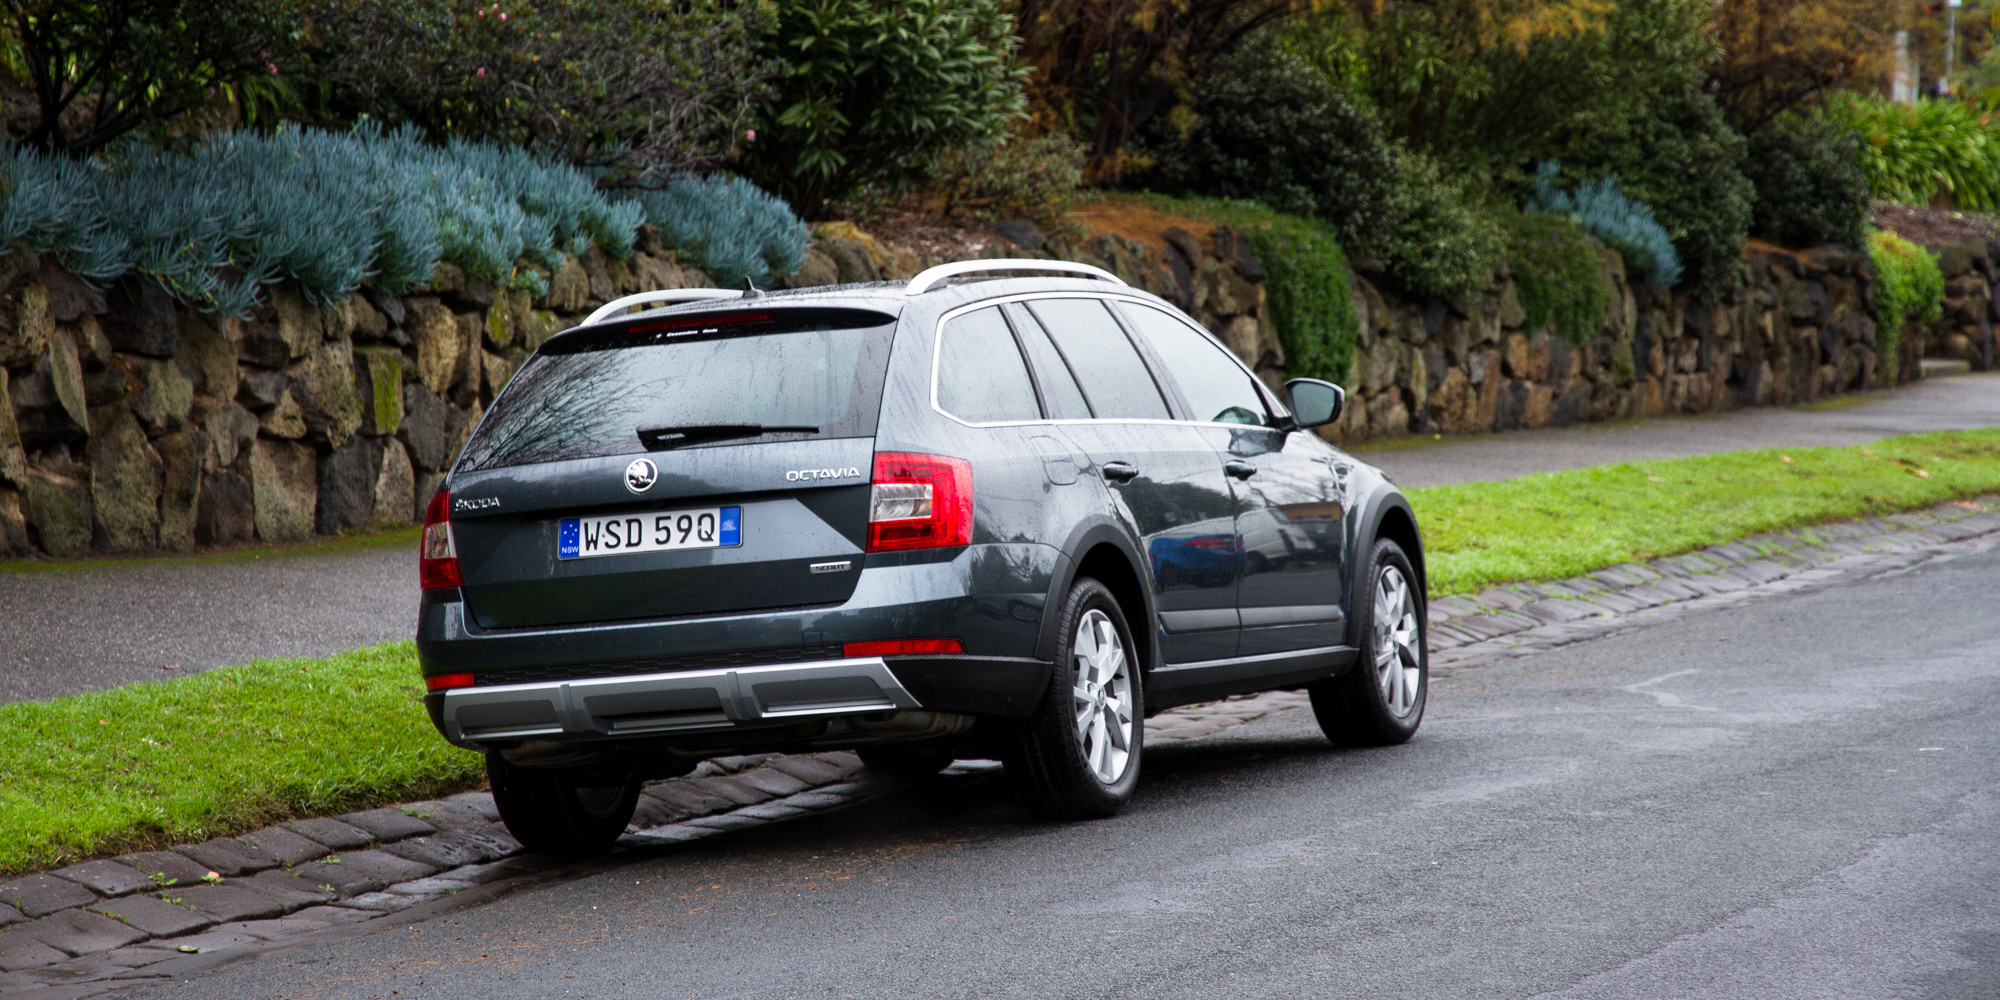 2016 Skoda Octavia Scout Test Rear Side View (Photo 23 of 23)